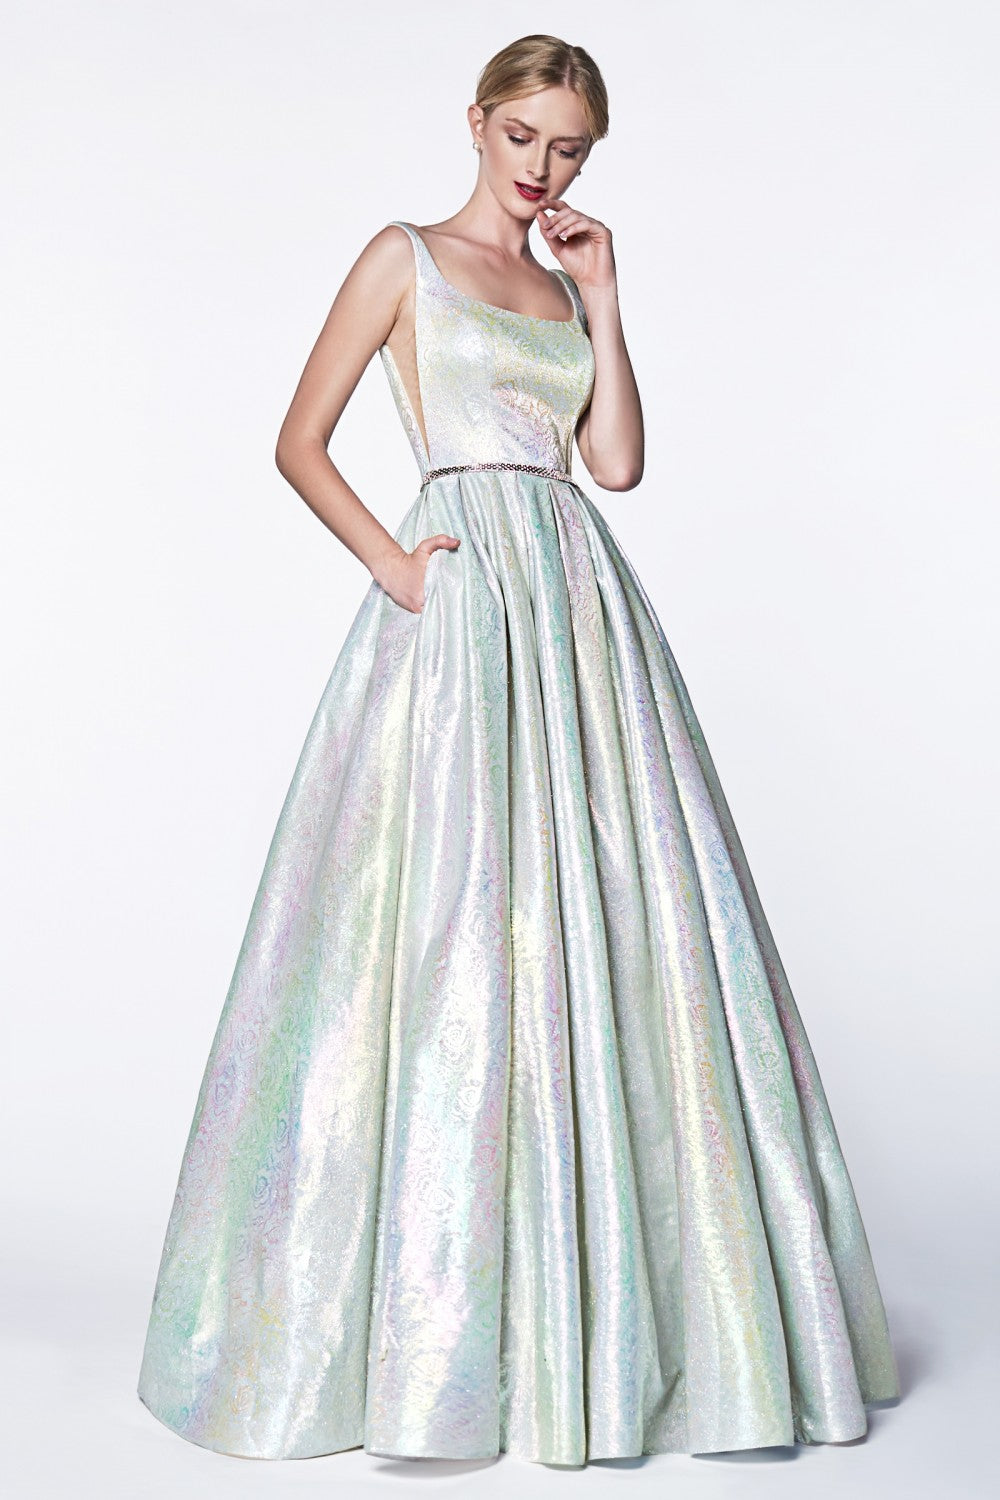 Metallic Holograohic Floral Ball Gown With Illusion Sides And Pockets